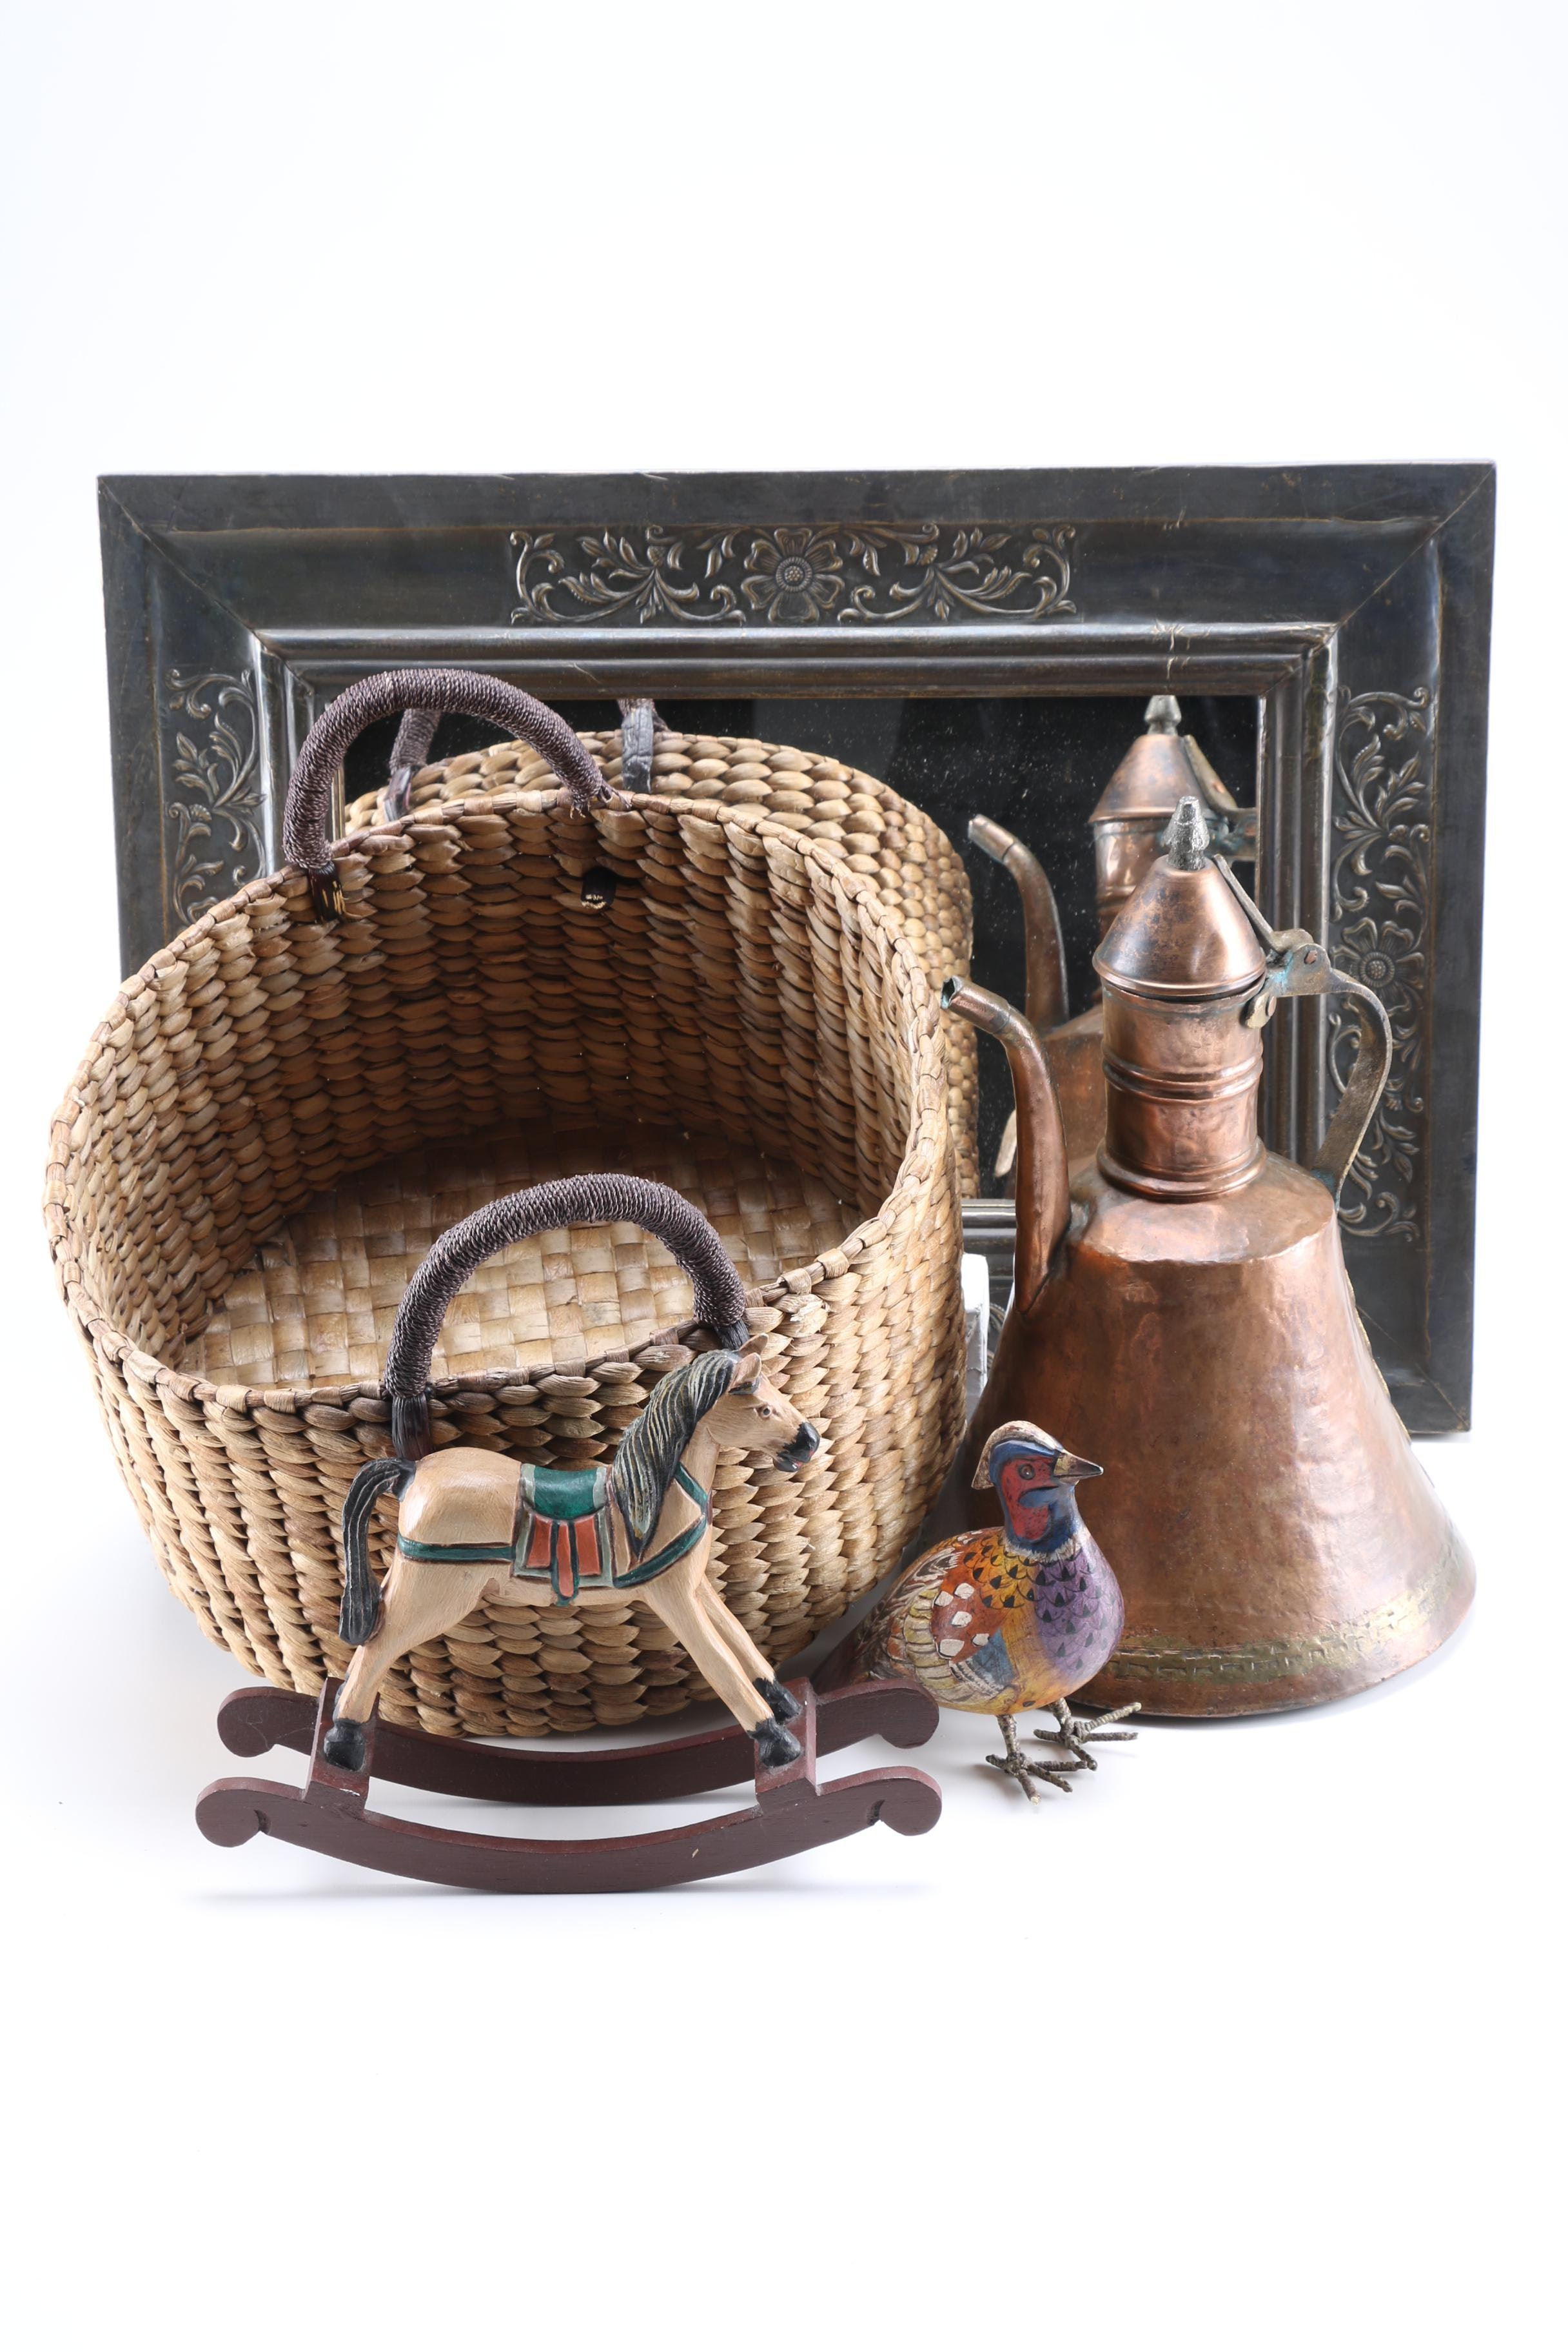 Turkish Copper Coffee Pot and Assorted Decor